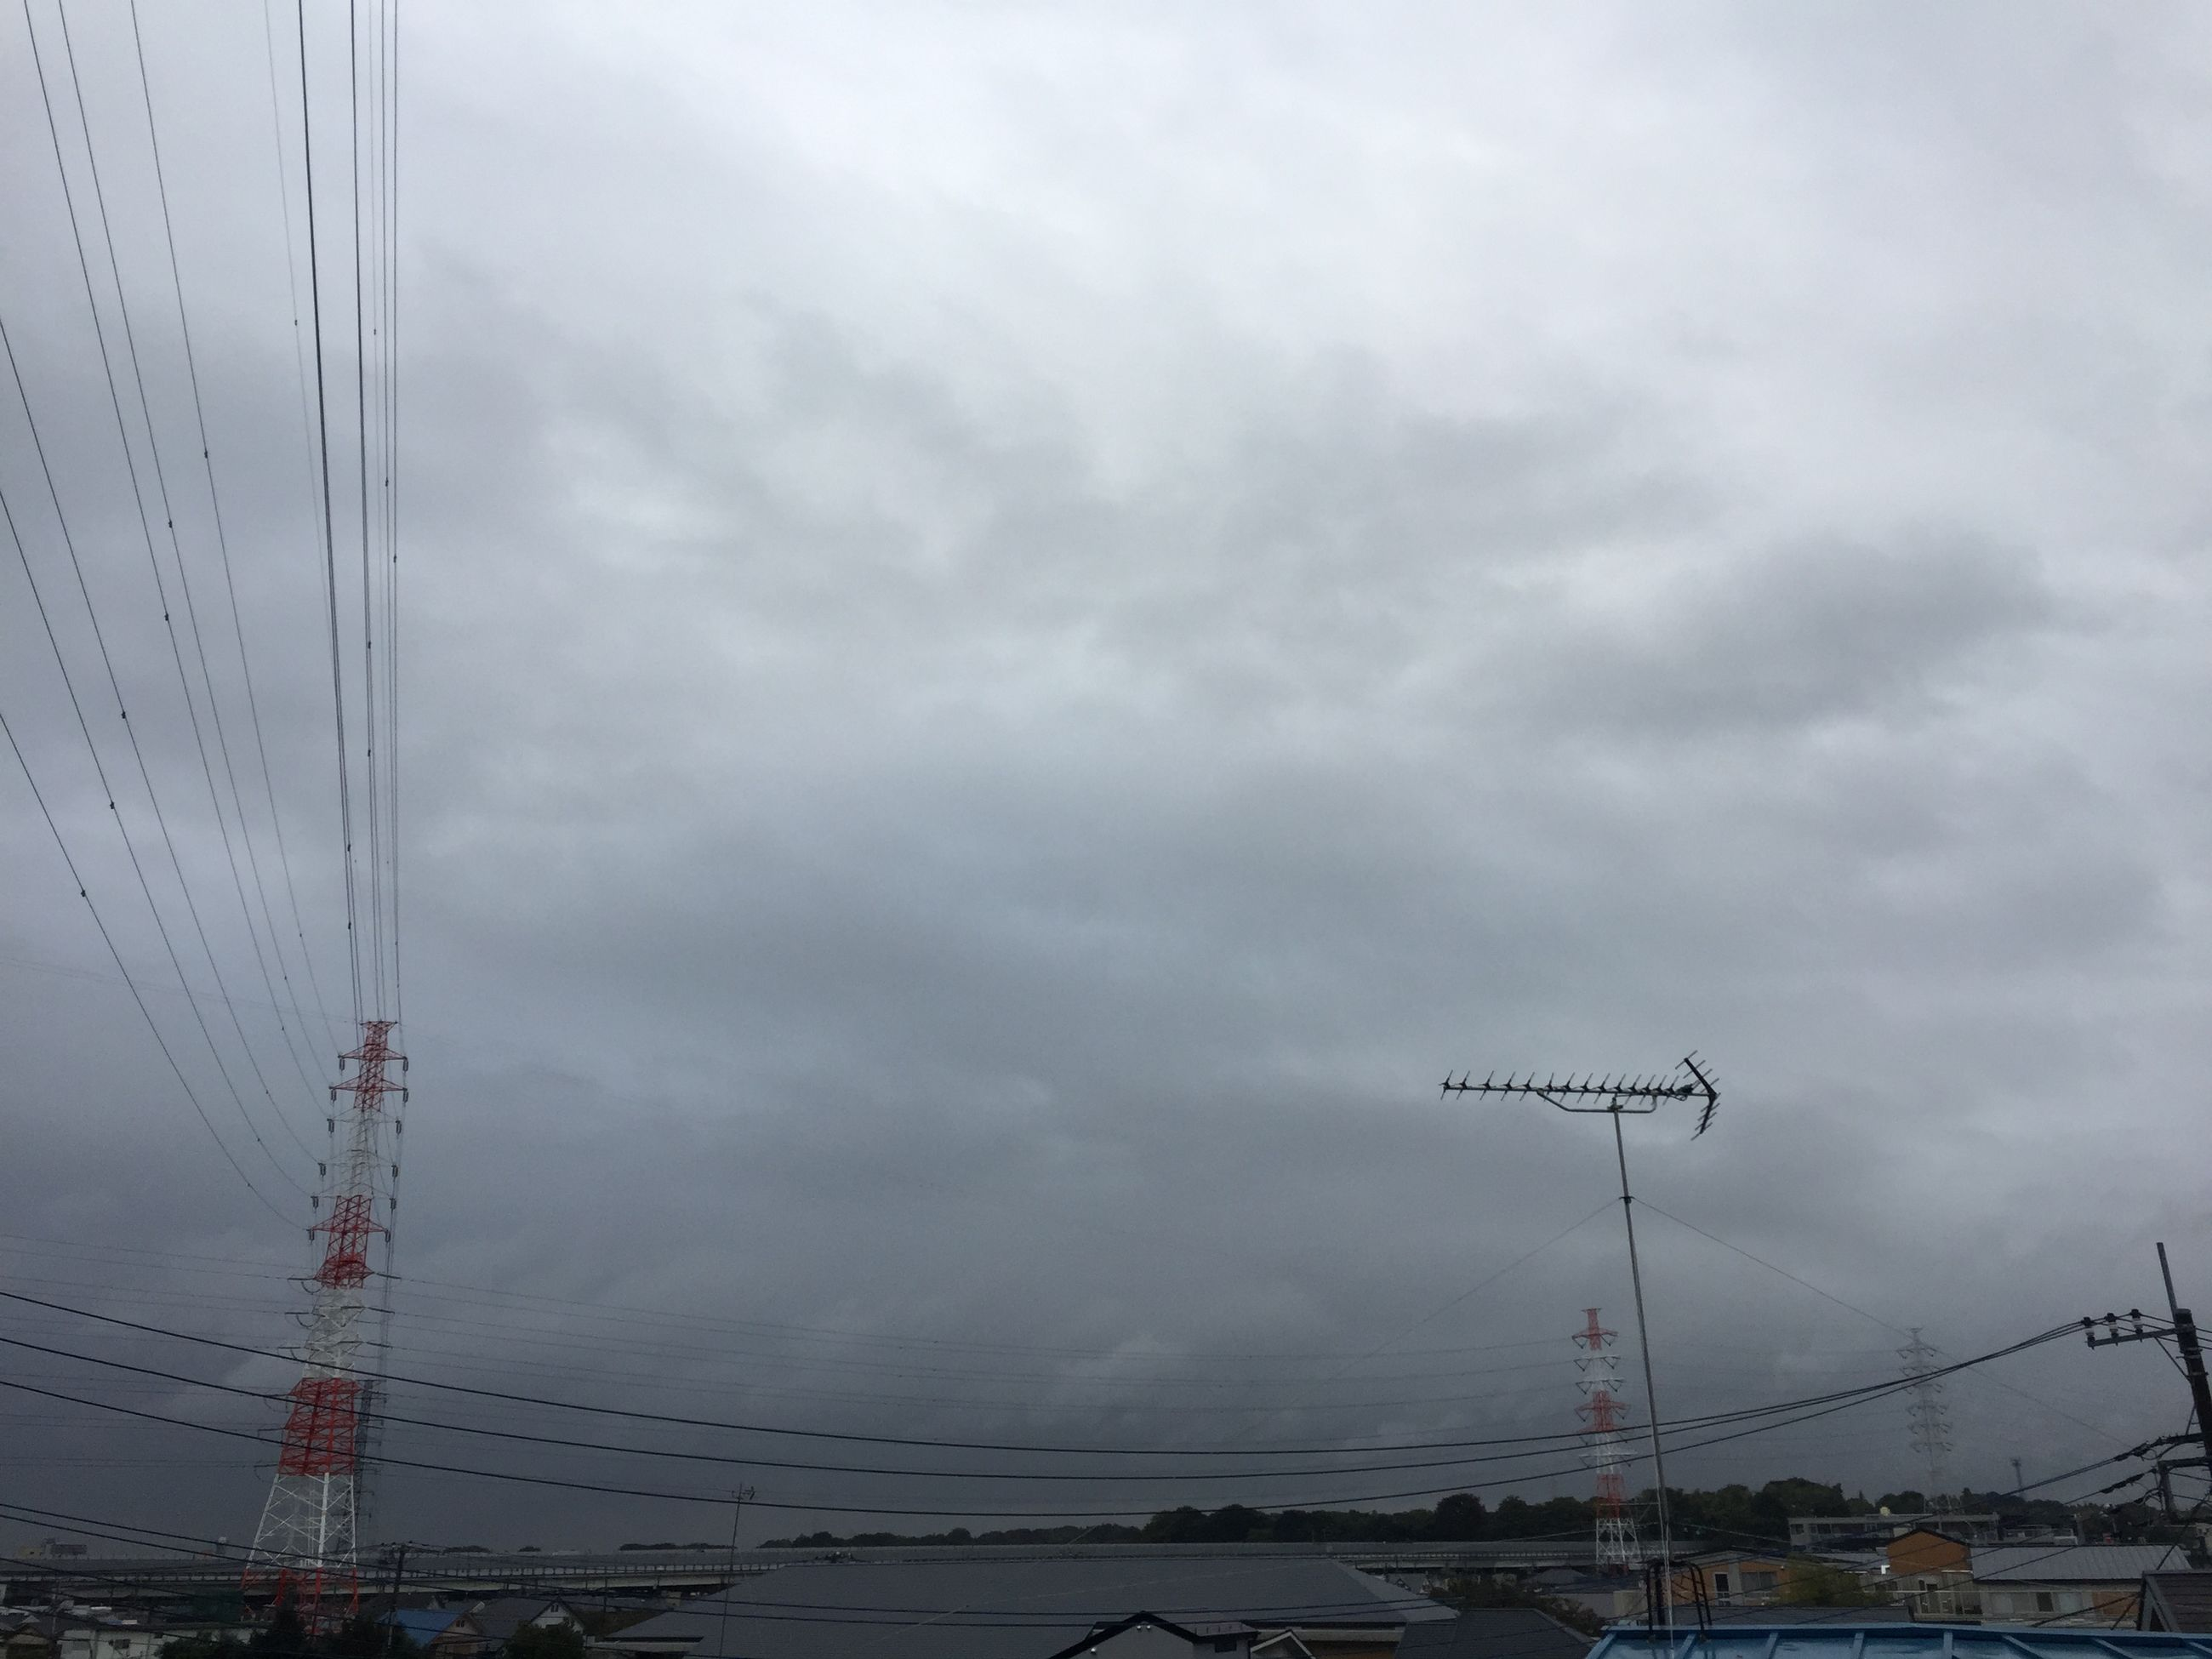 power line, electricity, low angle view, electricity pylon, power supply, cable, connection, sky, technology, cloud - sky, fuel and power generation, cloudy, power cable, transportation, day, lighting equipment, complexity, outdoors, weather, cloud